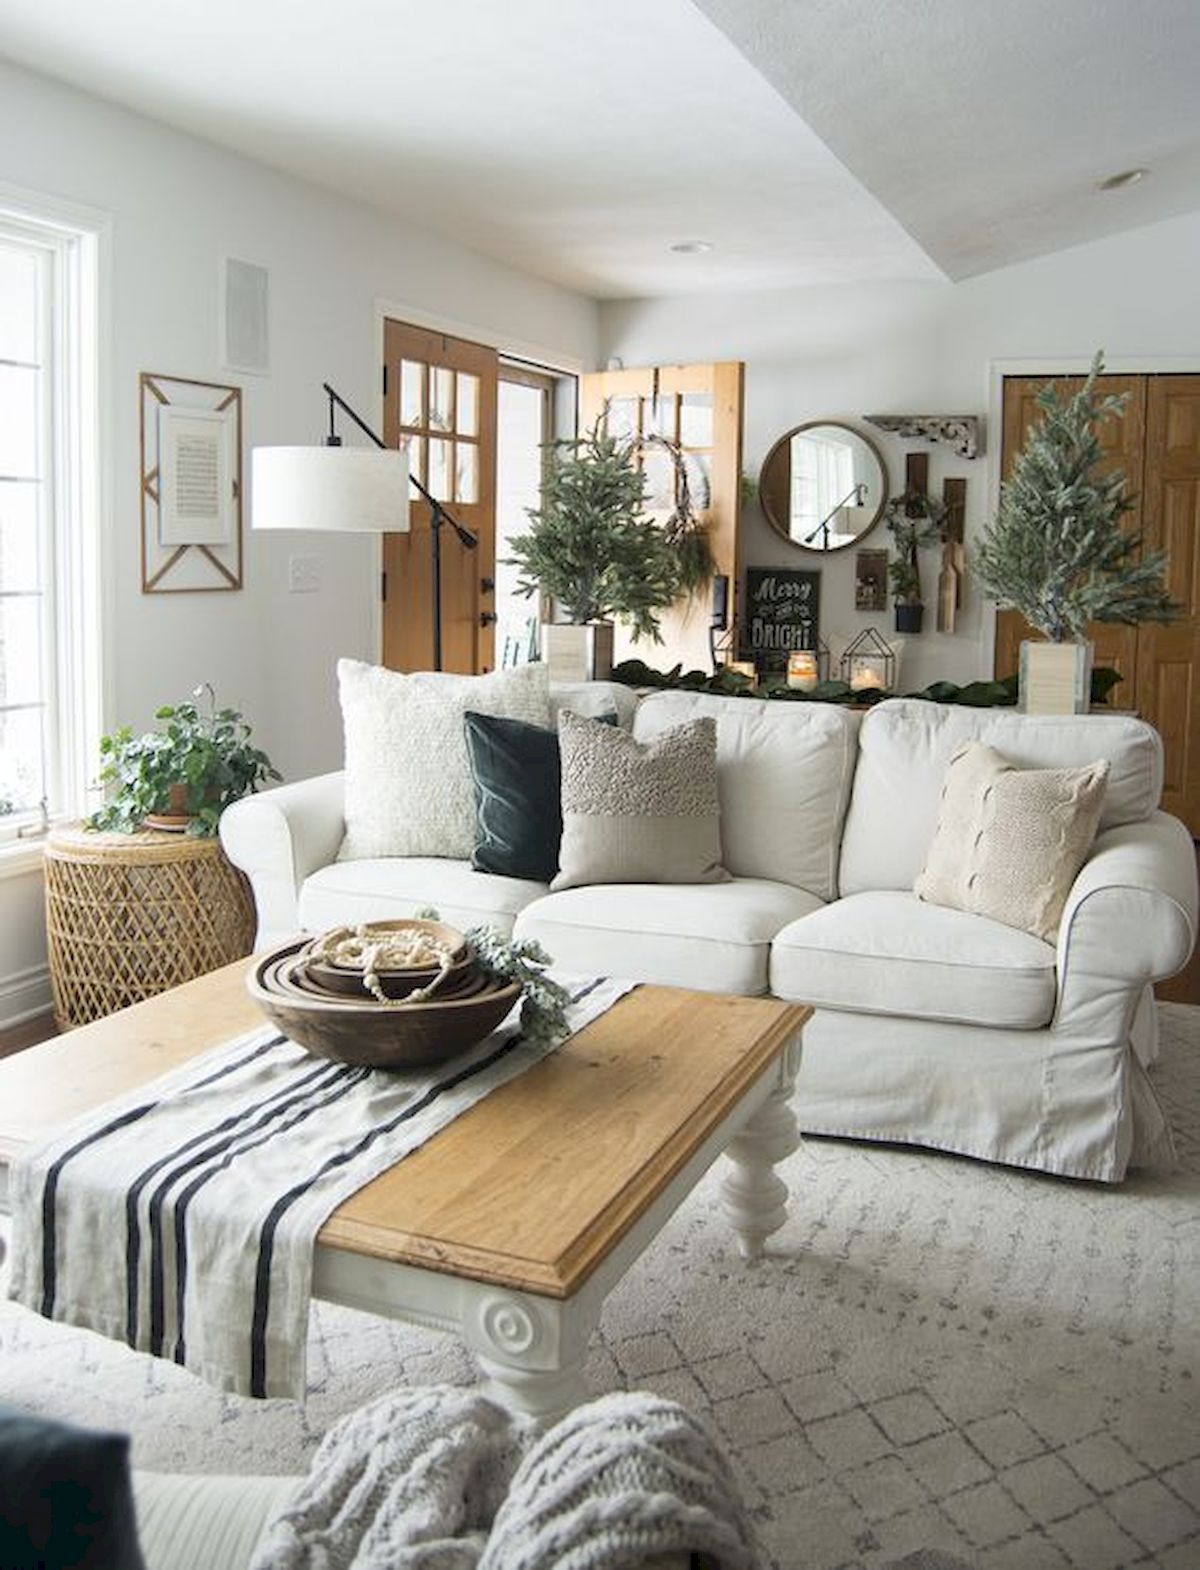 Pin by Janine Coulthard on Farmhouse and Industrial style